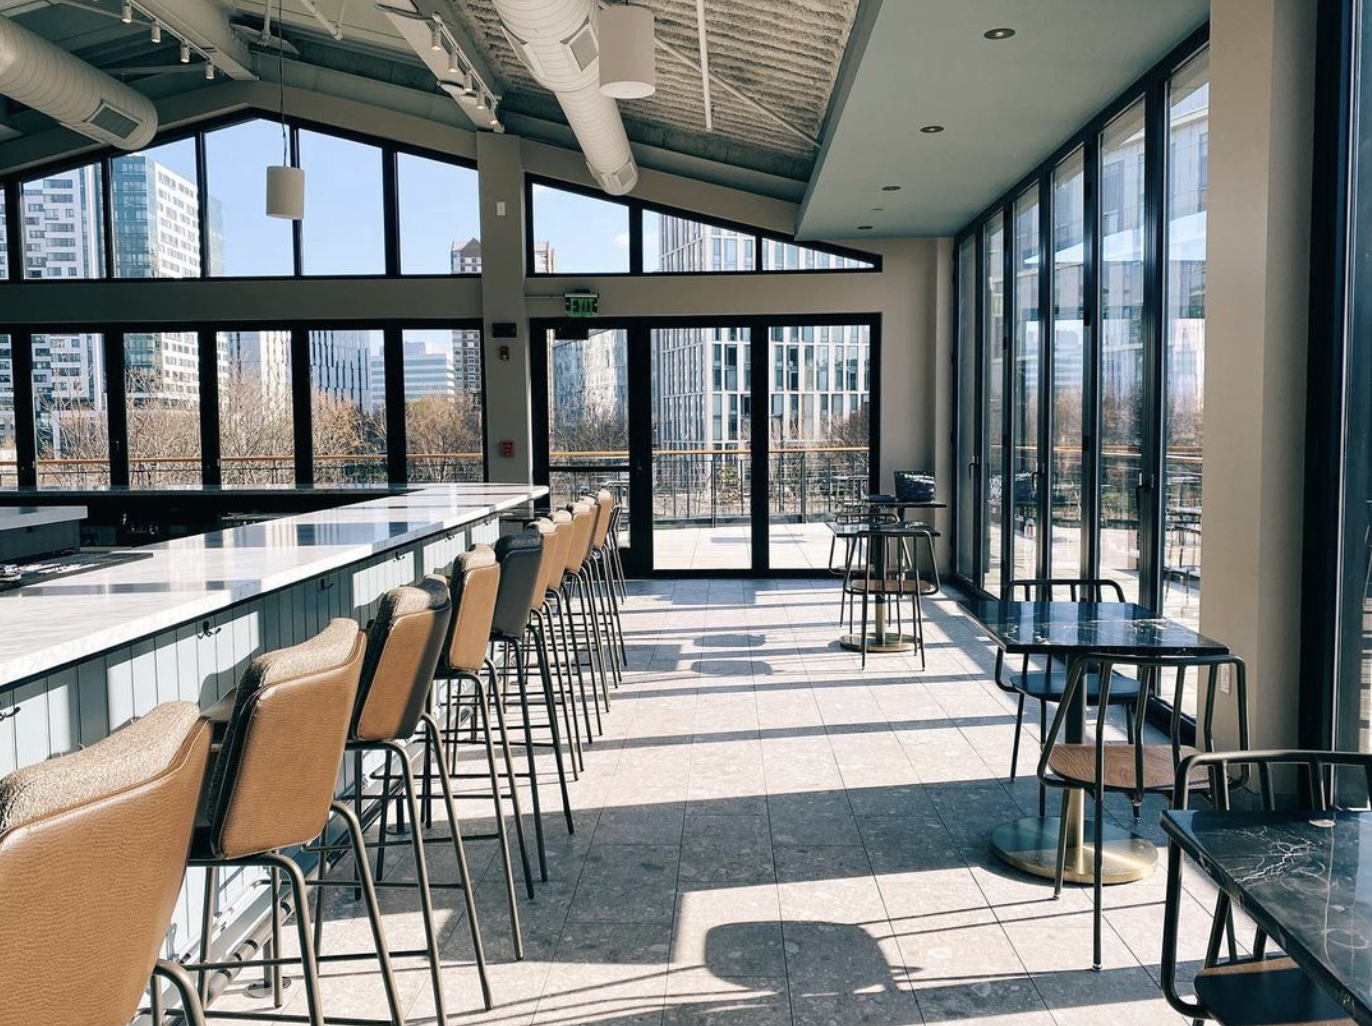 The Lexington provides rooftop drinks and eats in Cambridge Crossing.